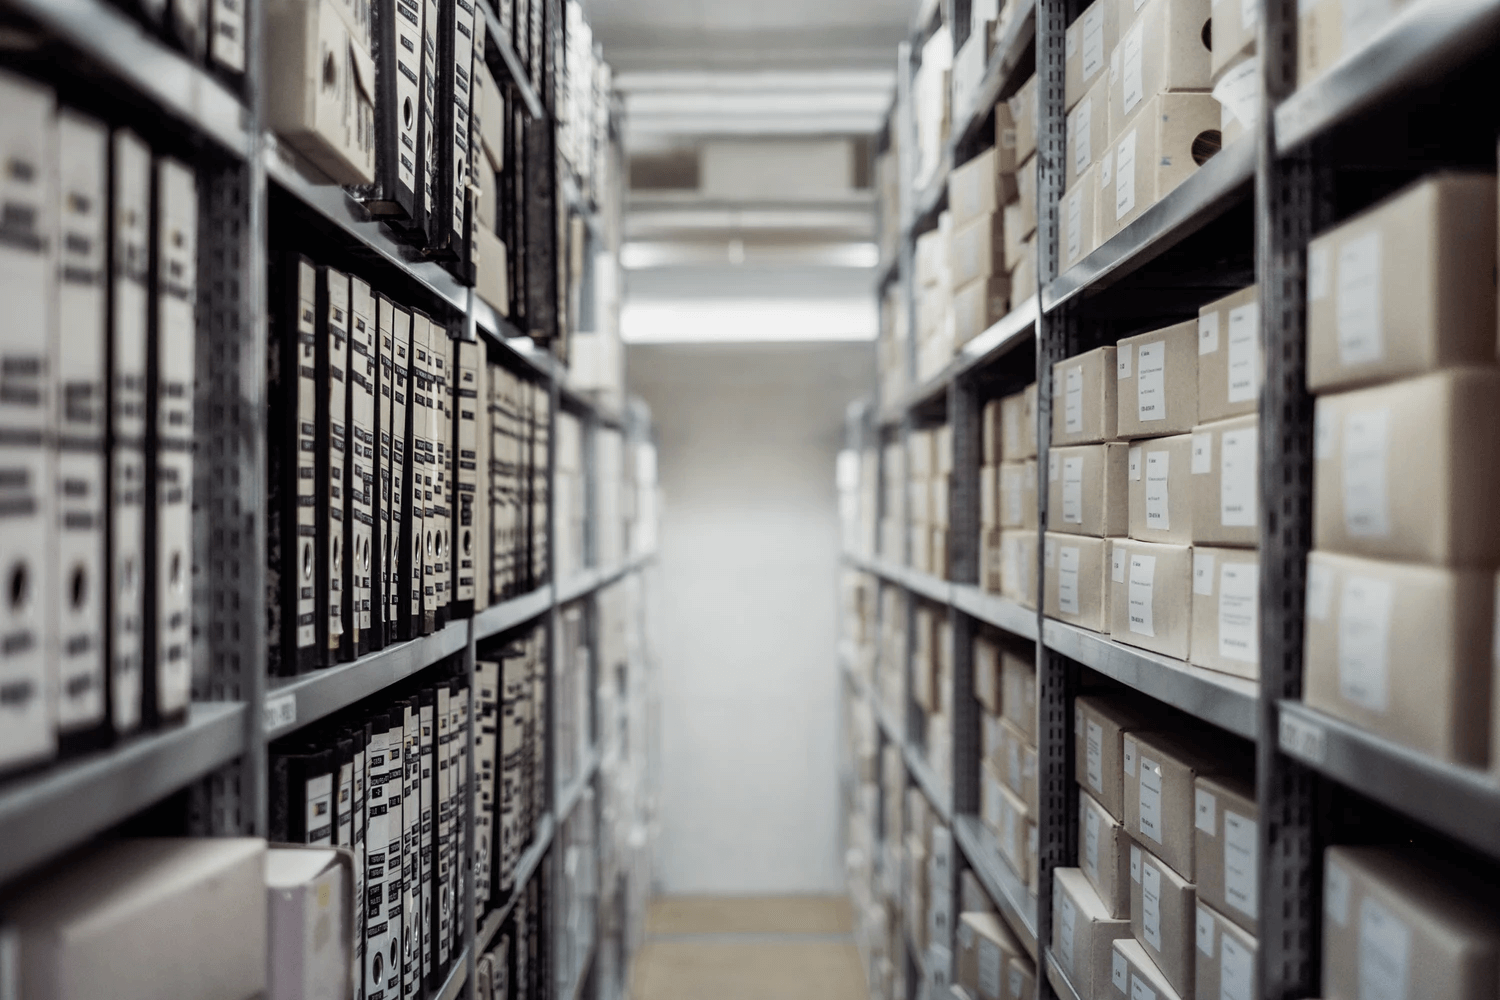 Inventory turnover: boxes of inventory organized on shelves